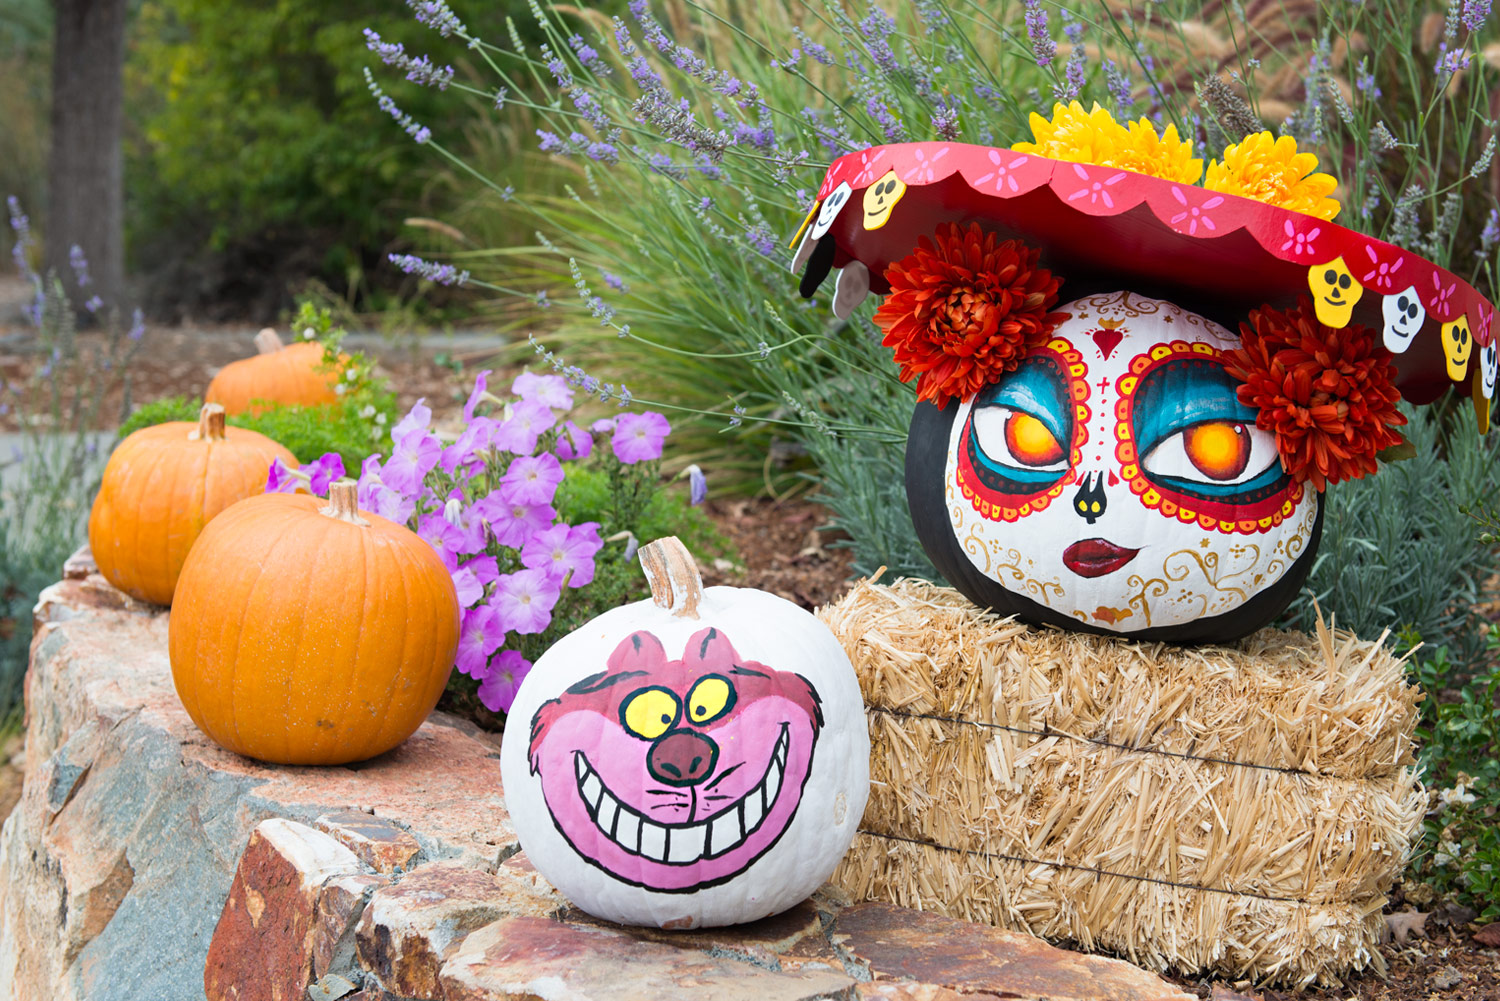 Painting Pumpkins The Book Of Life